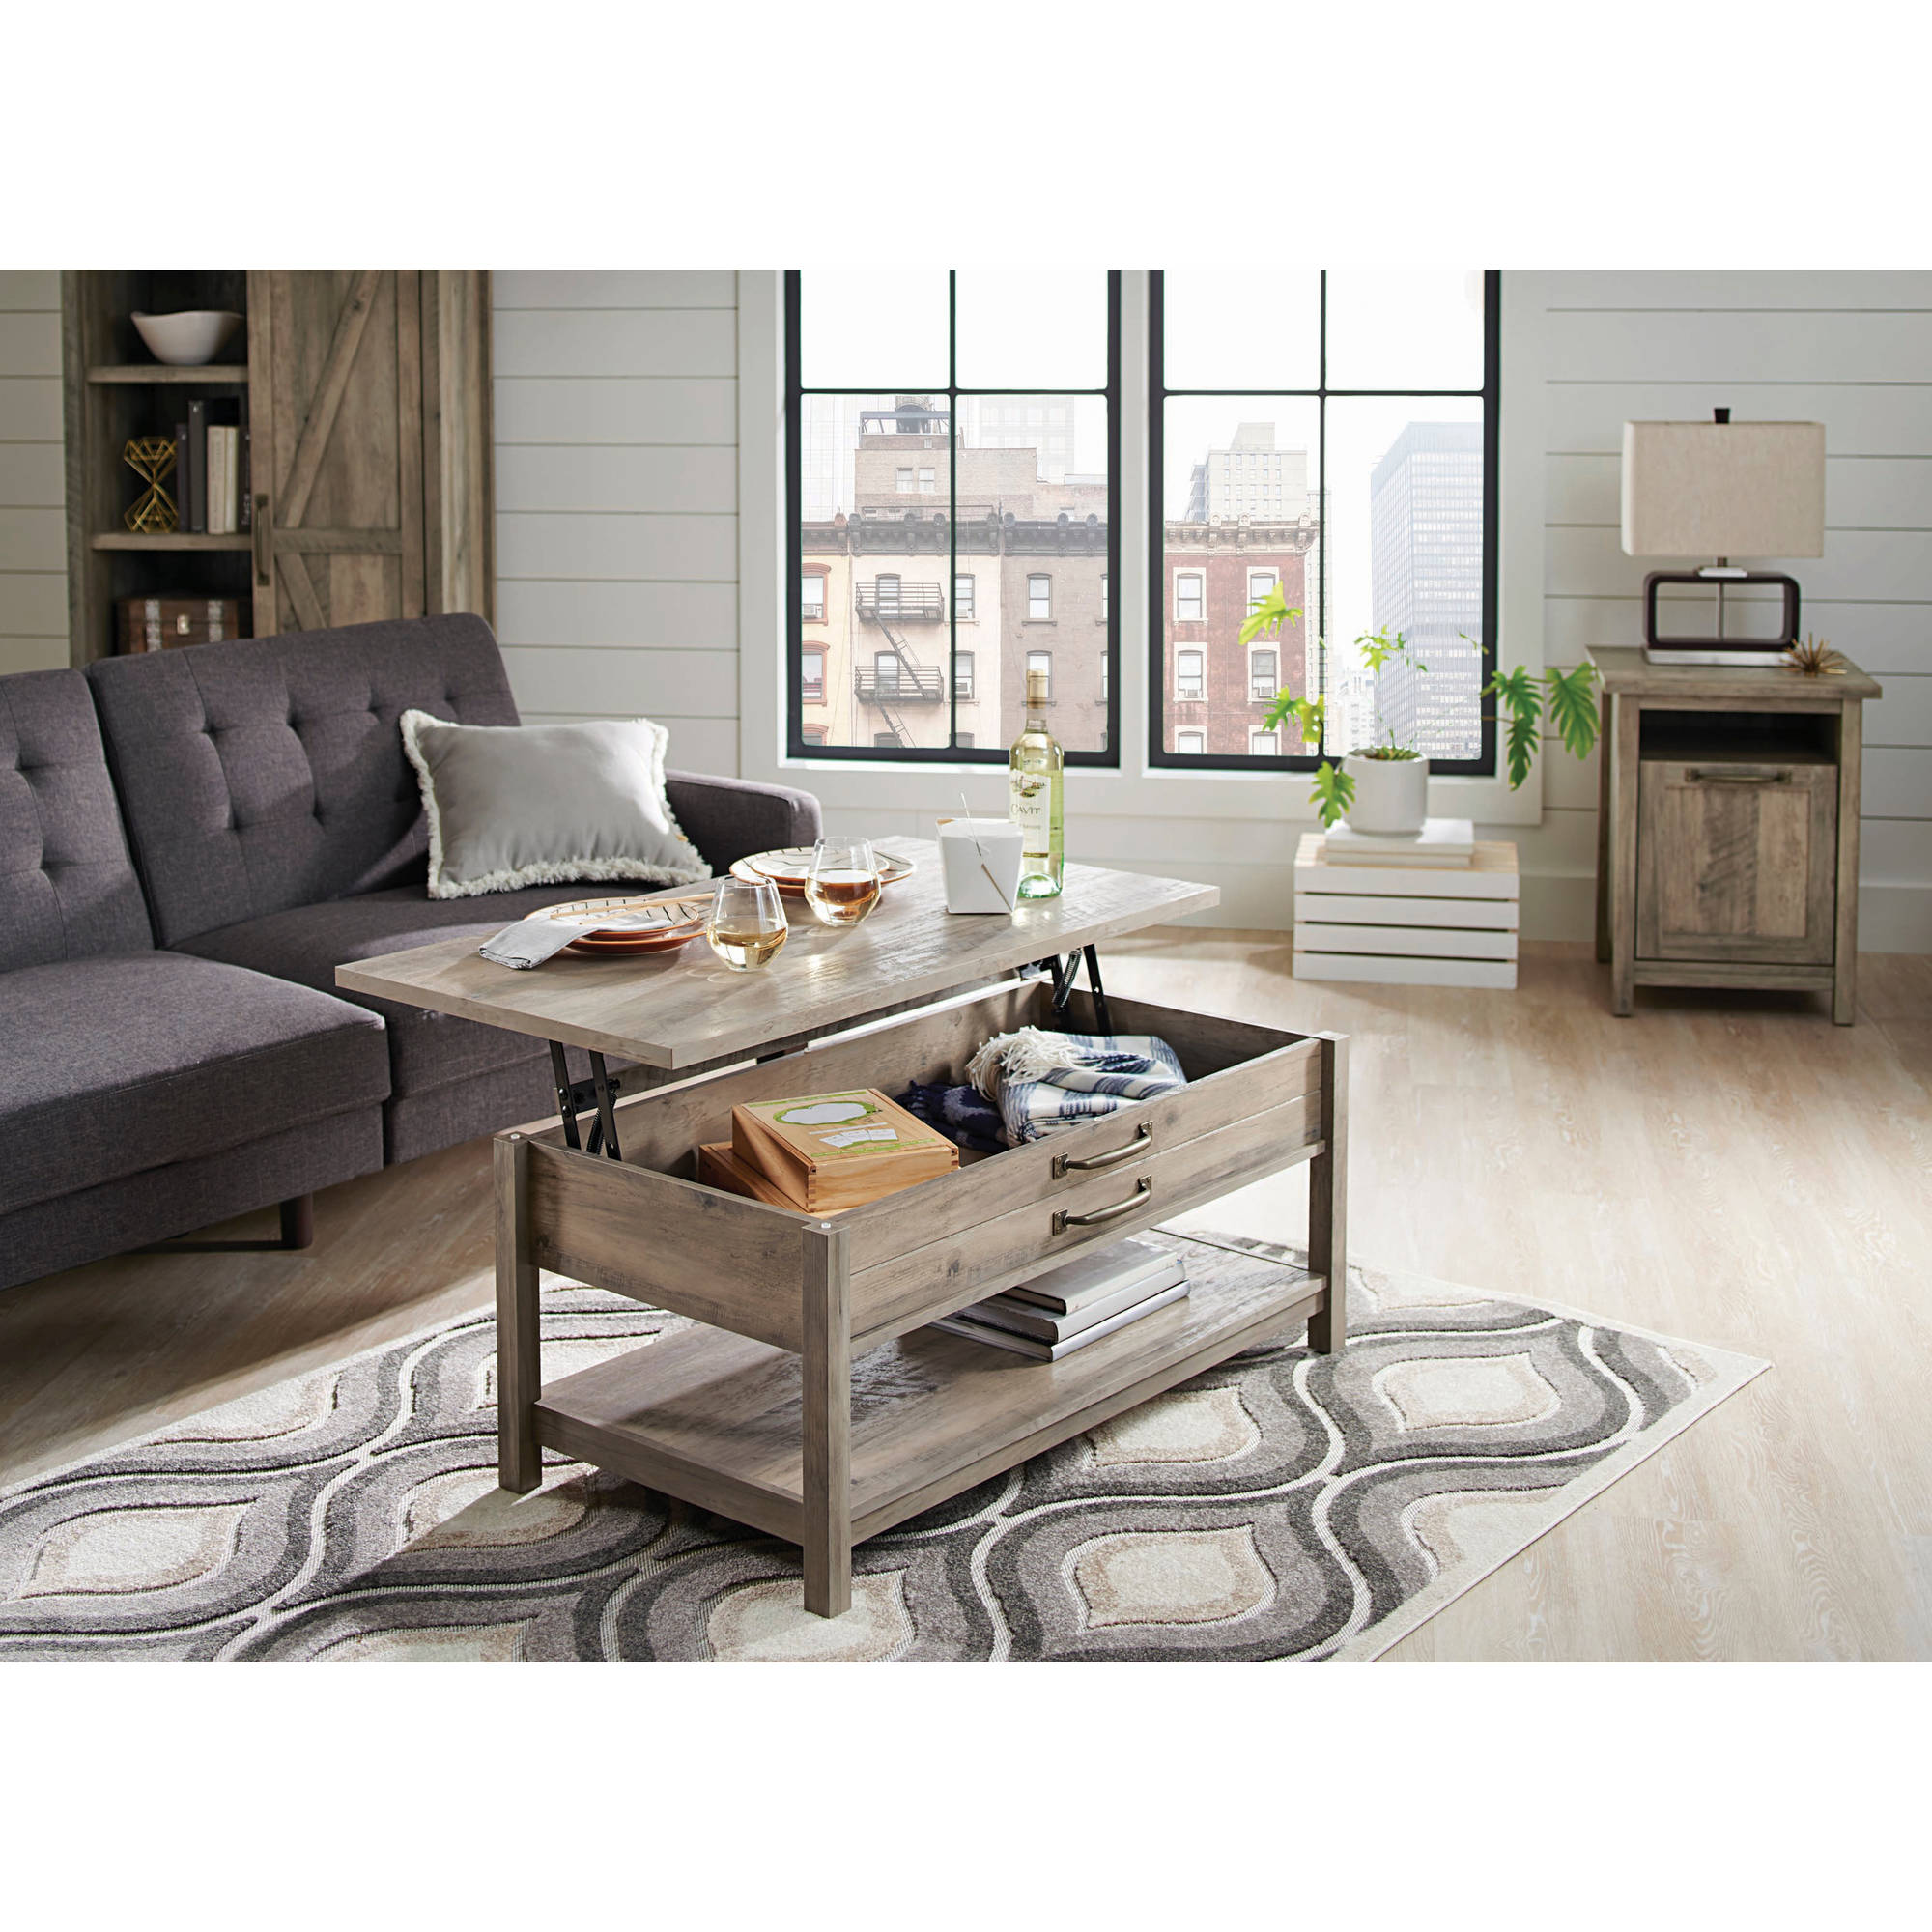 . Better Homes   Gardens Modern Farmhouse Lift Top Coffee Table  Rustic Gray  Finish